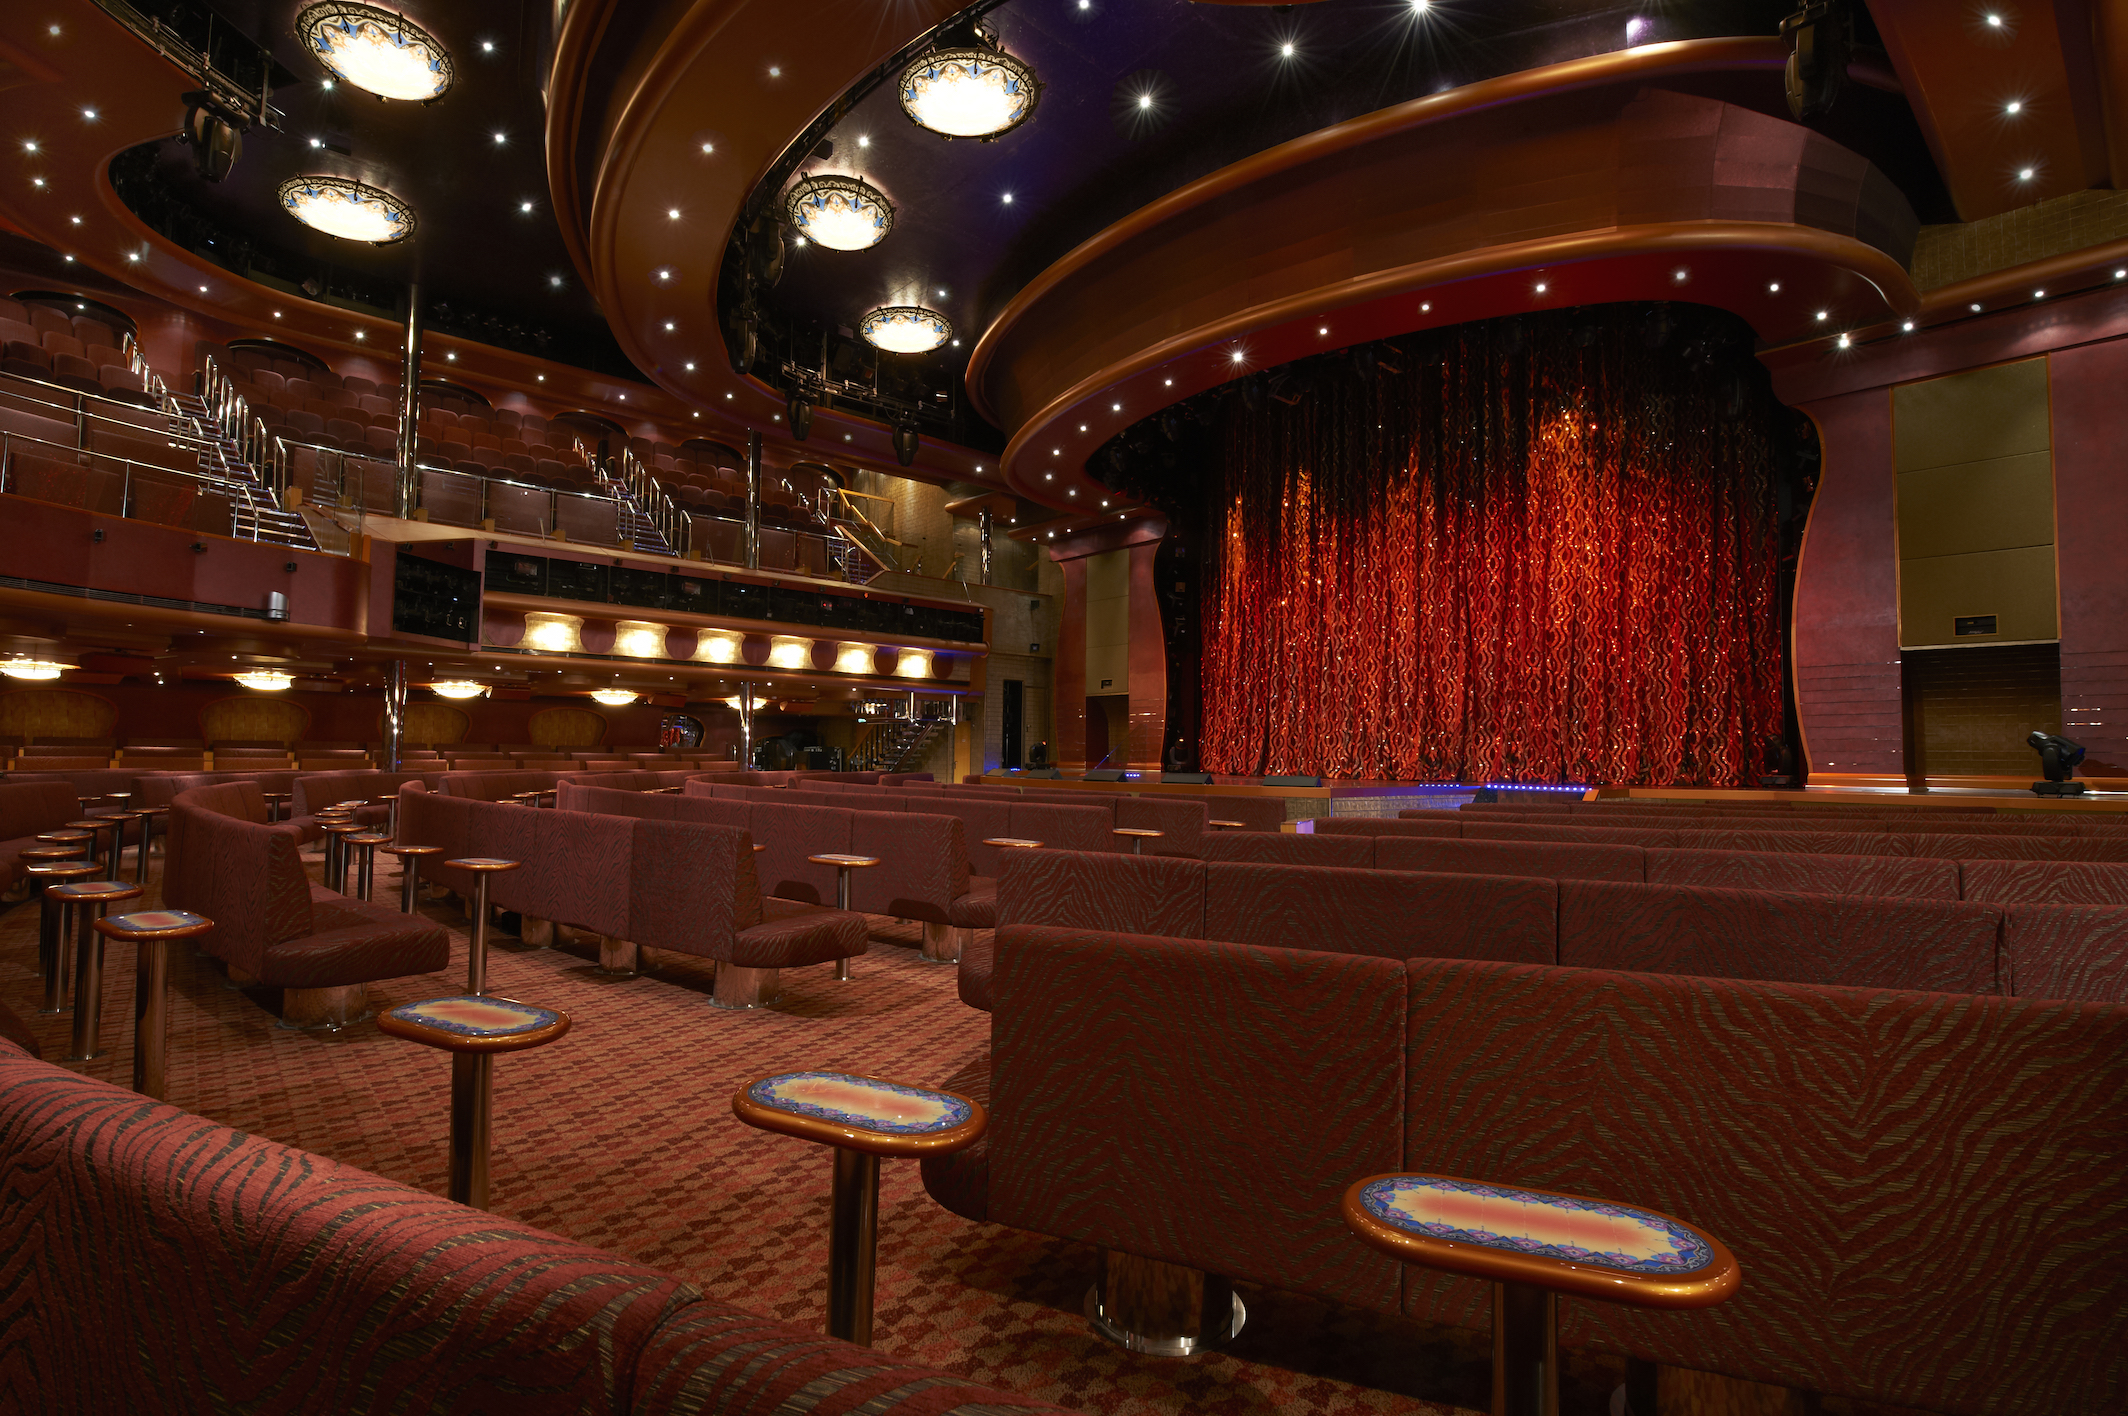 Carnival Magic Showtime Theatre 2.jpg